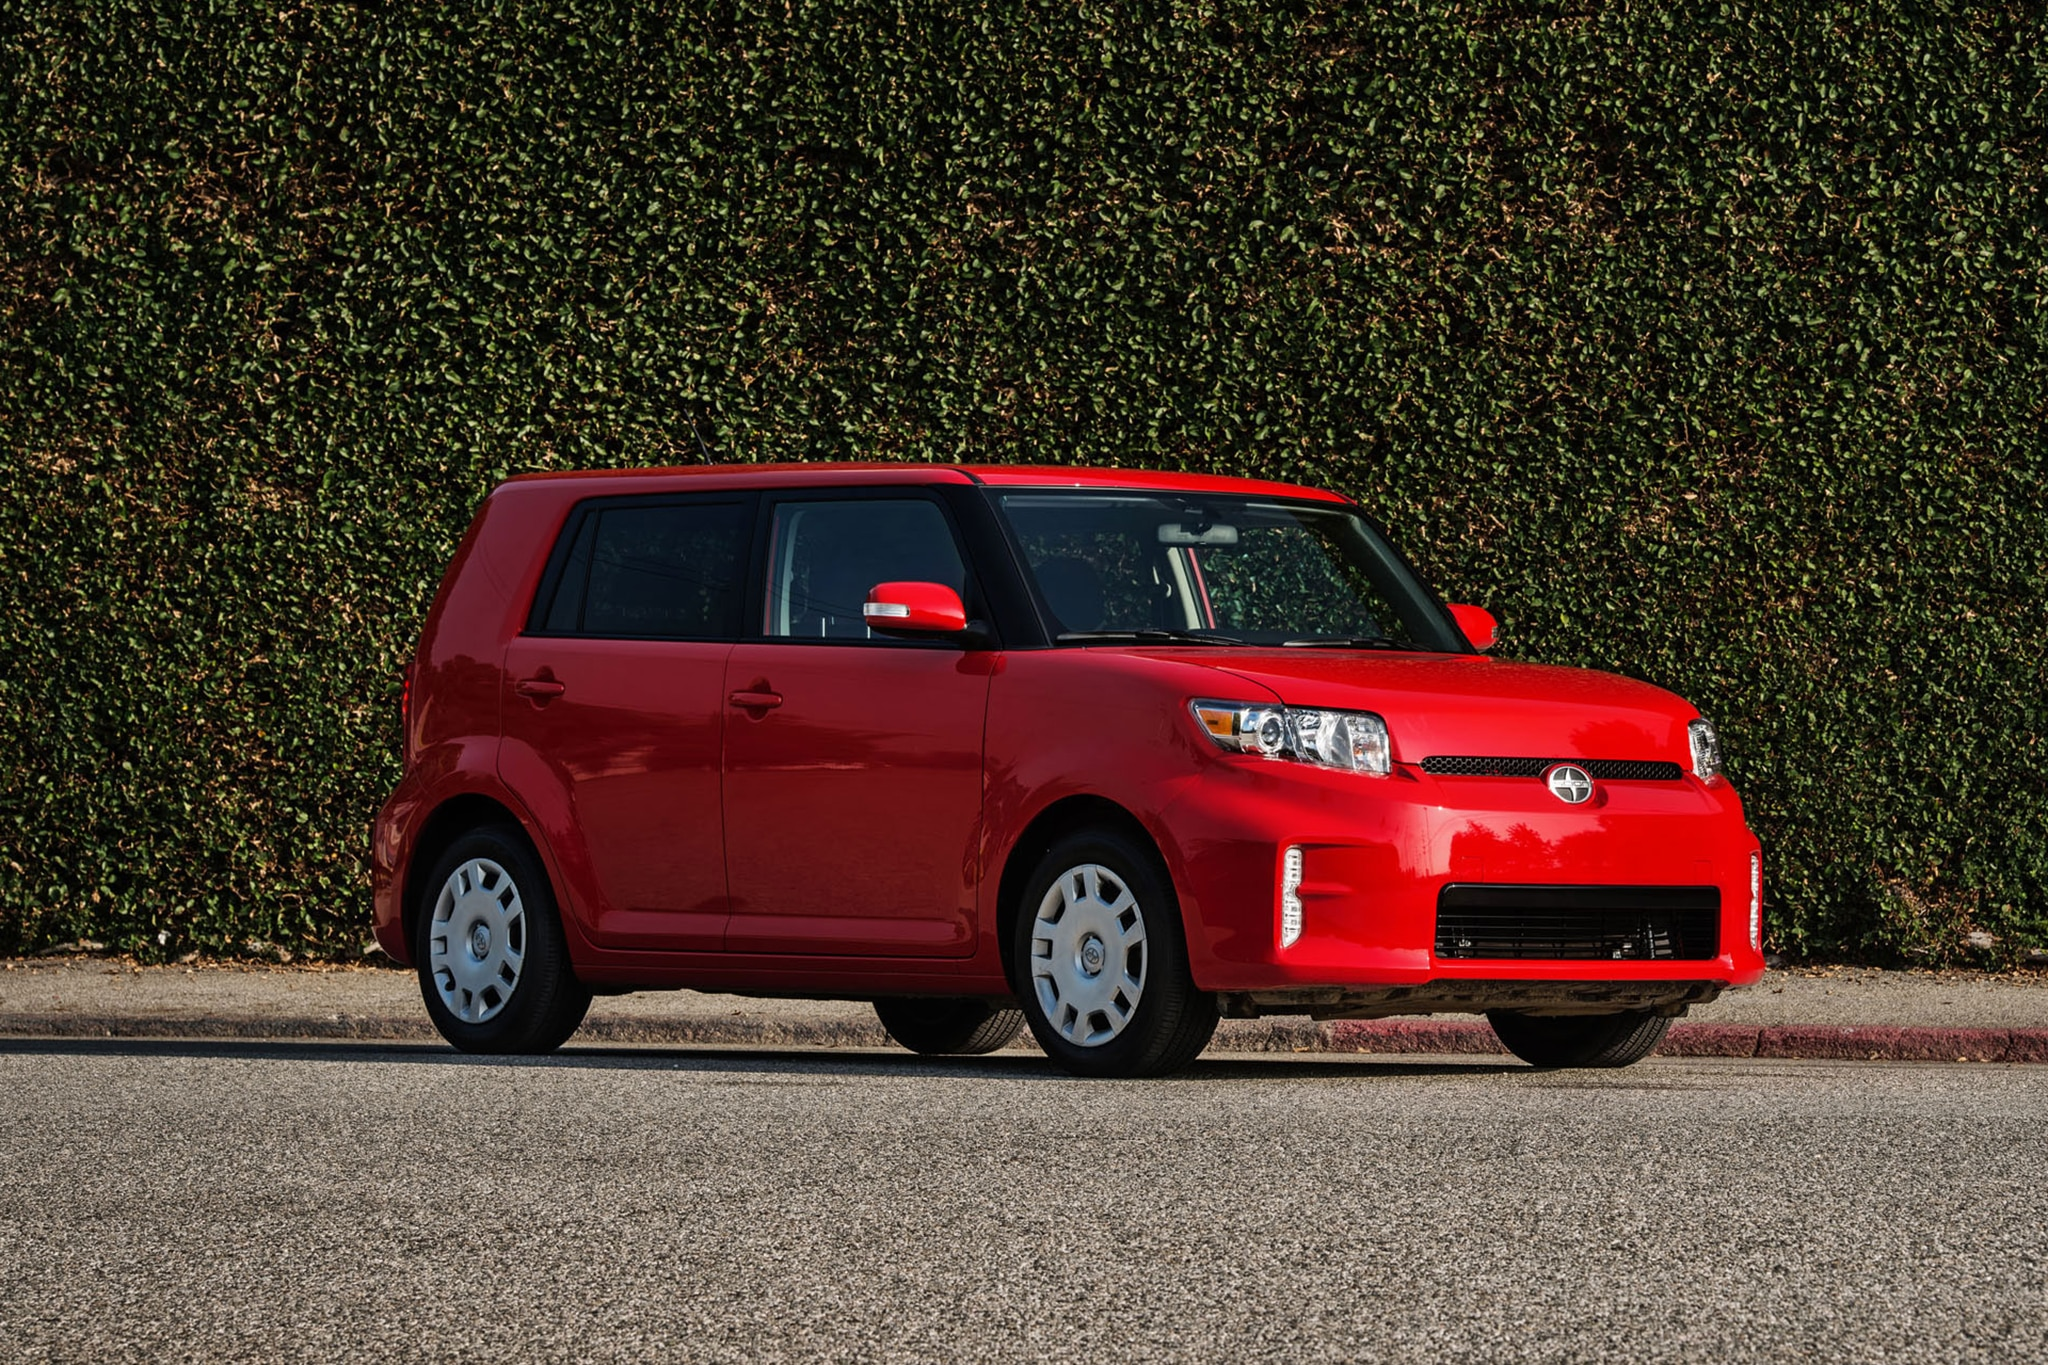 xb toyota cars series review scion speed top ser release